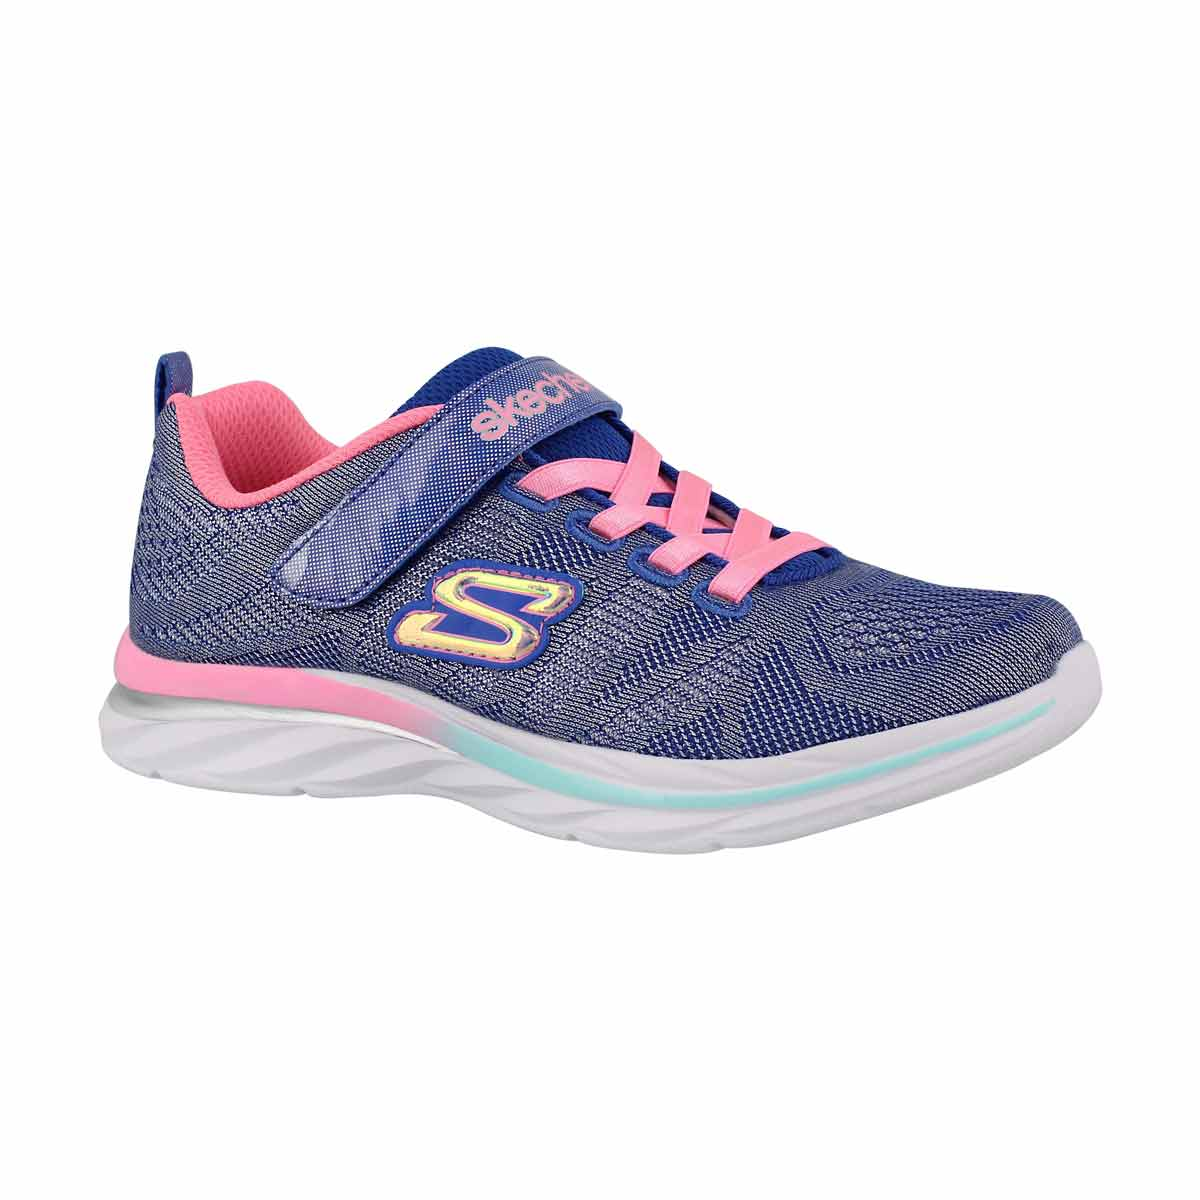 Girls' QUICK KICKS blue/pink sneakers